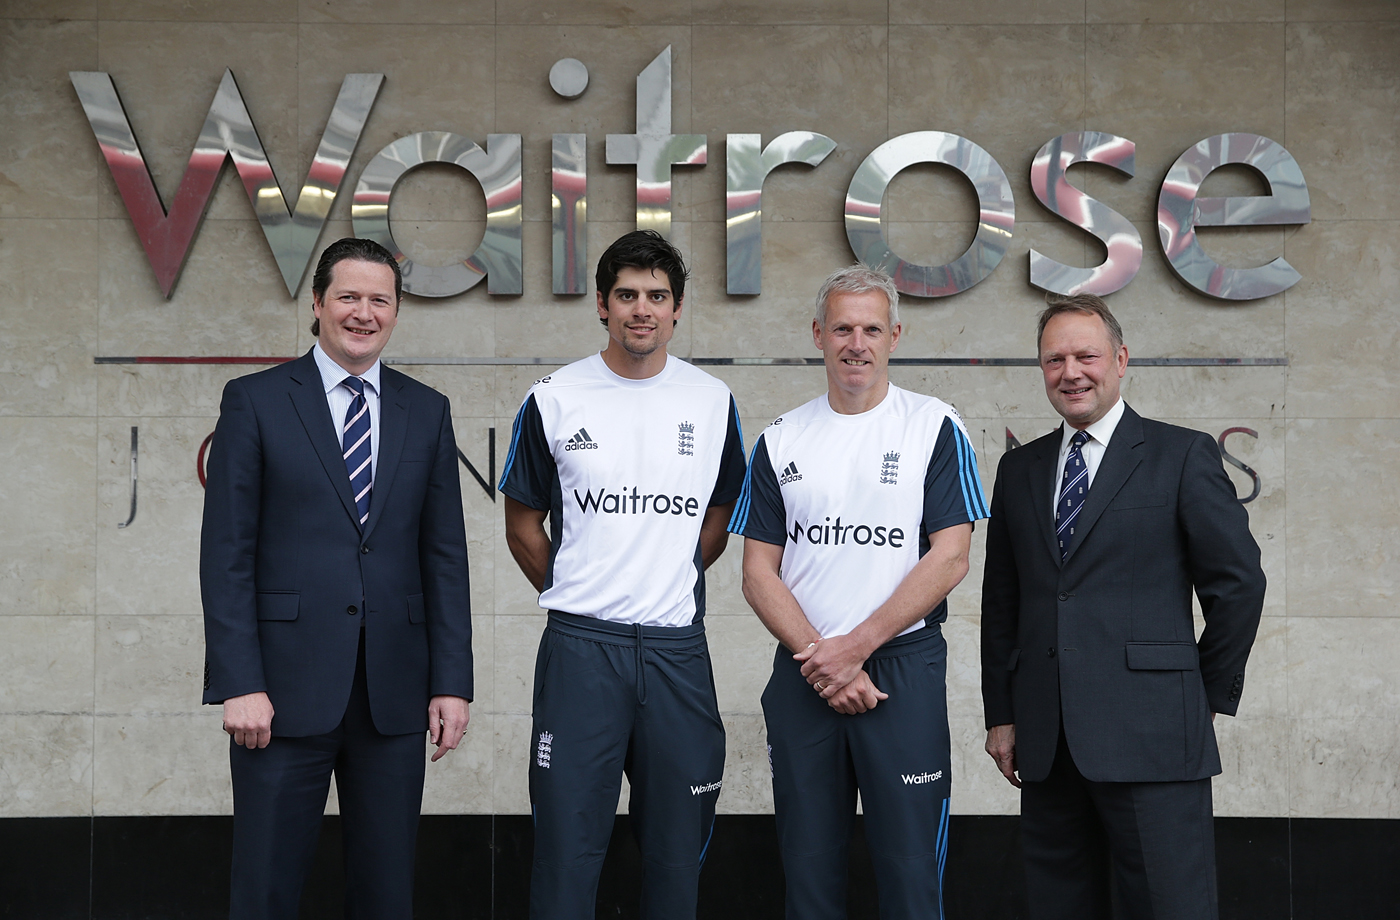 Alastair Cook, Peter Moores and Paul Downton pose with Rupert Ellwood of Waitrose during the official sponsorship launch